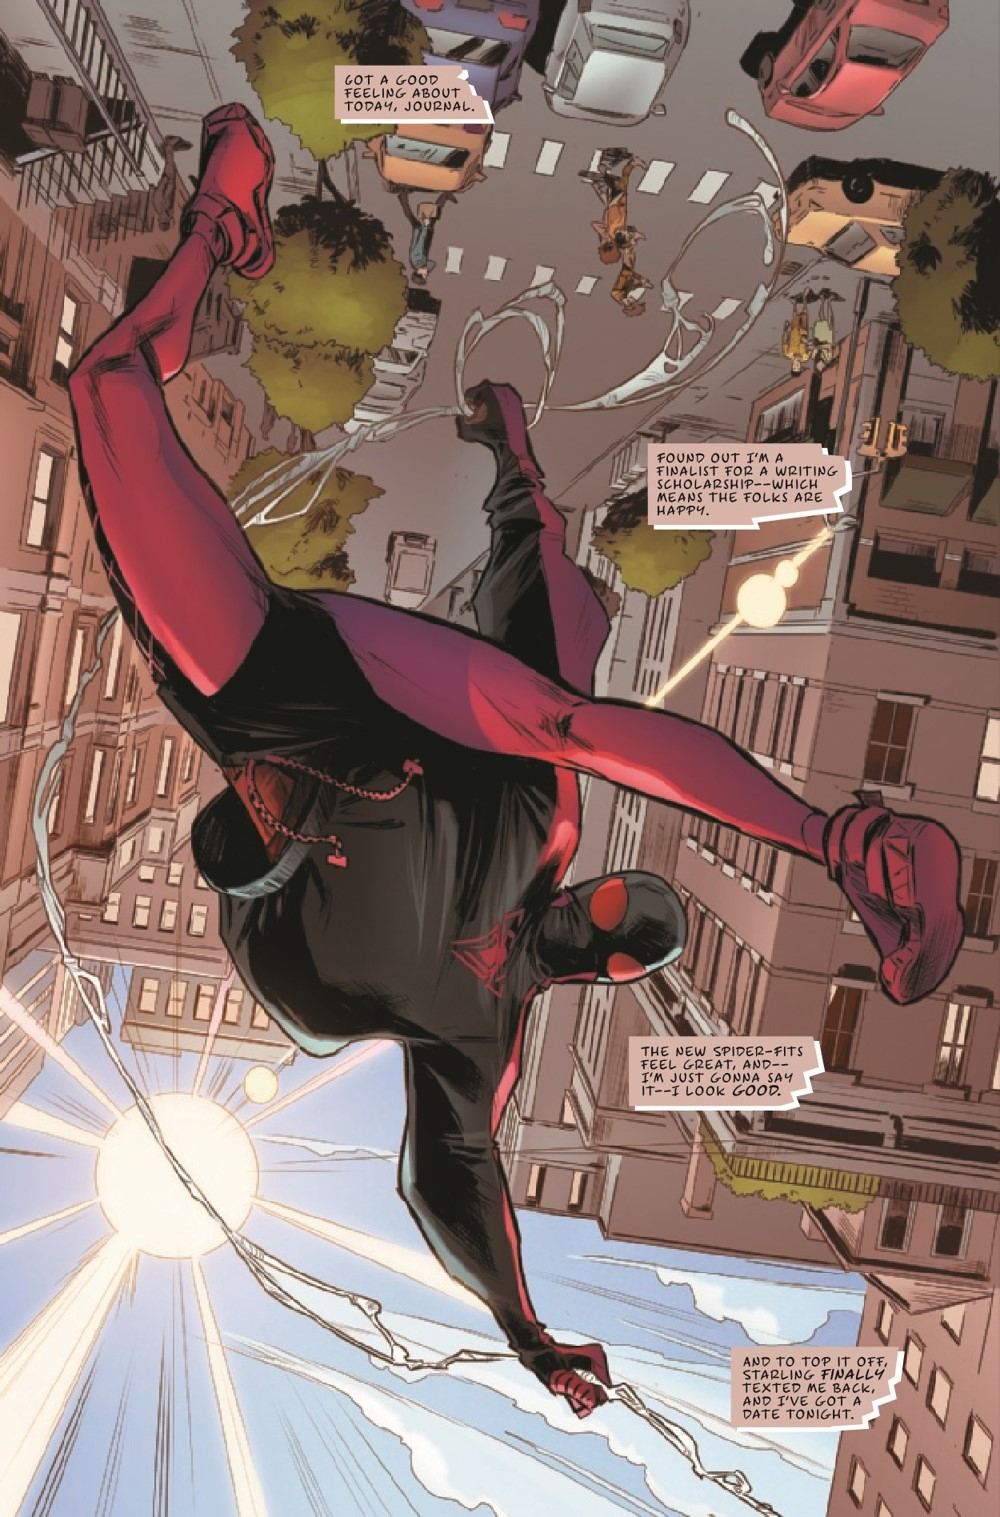 MMSM2018030_Preview-3 ComicList Previews: MILES MORALES SPIDER-MAN #30